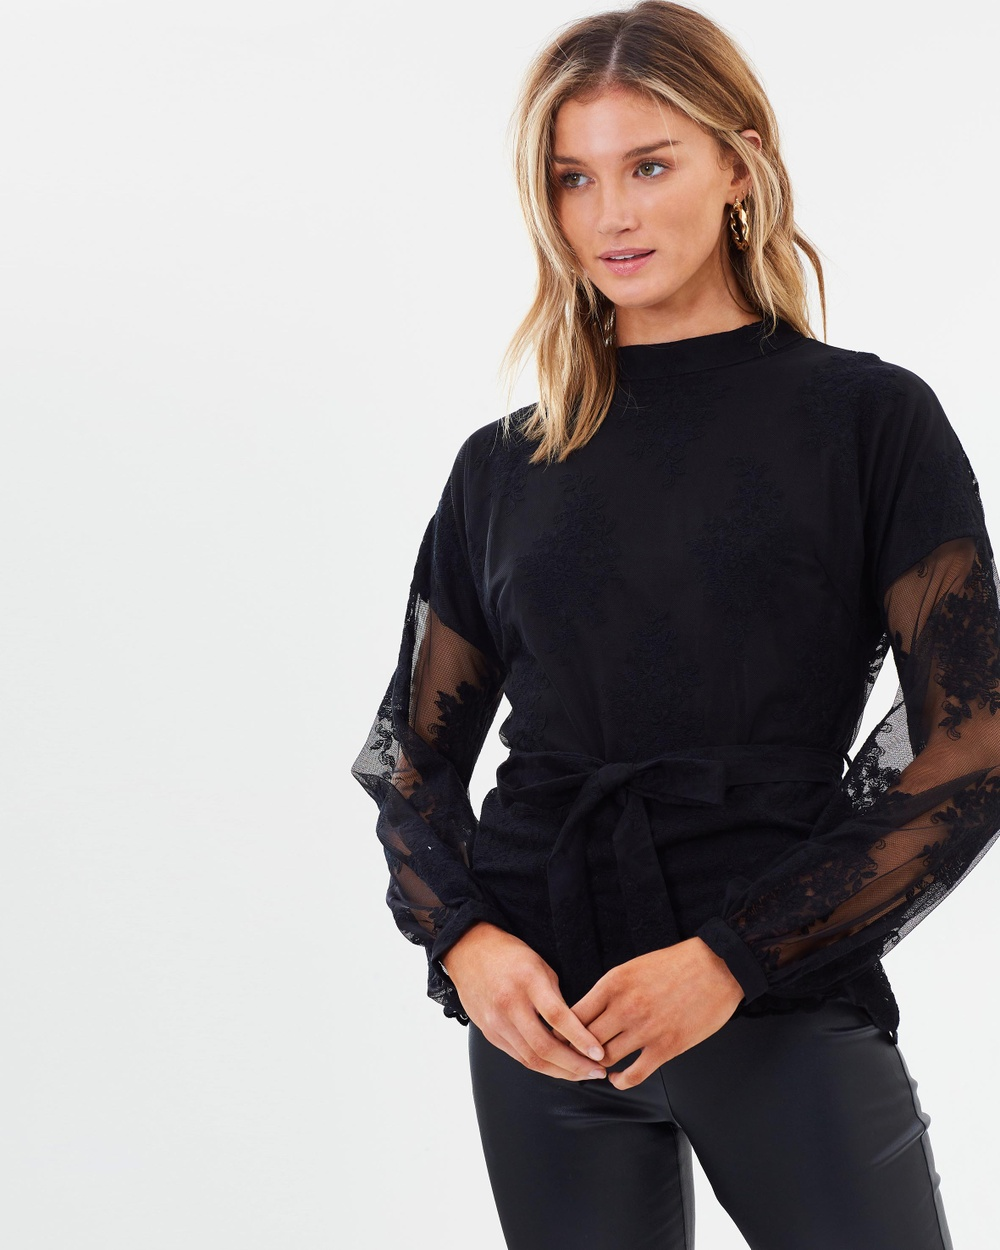 Ministry of Style Wanderer Top Tops Black Wanderer Top